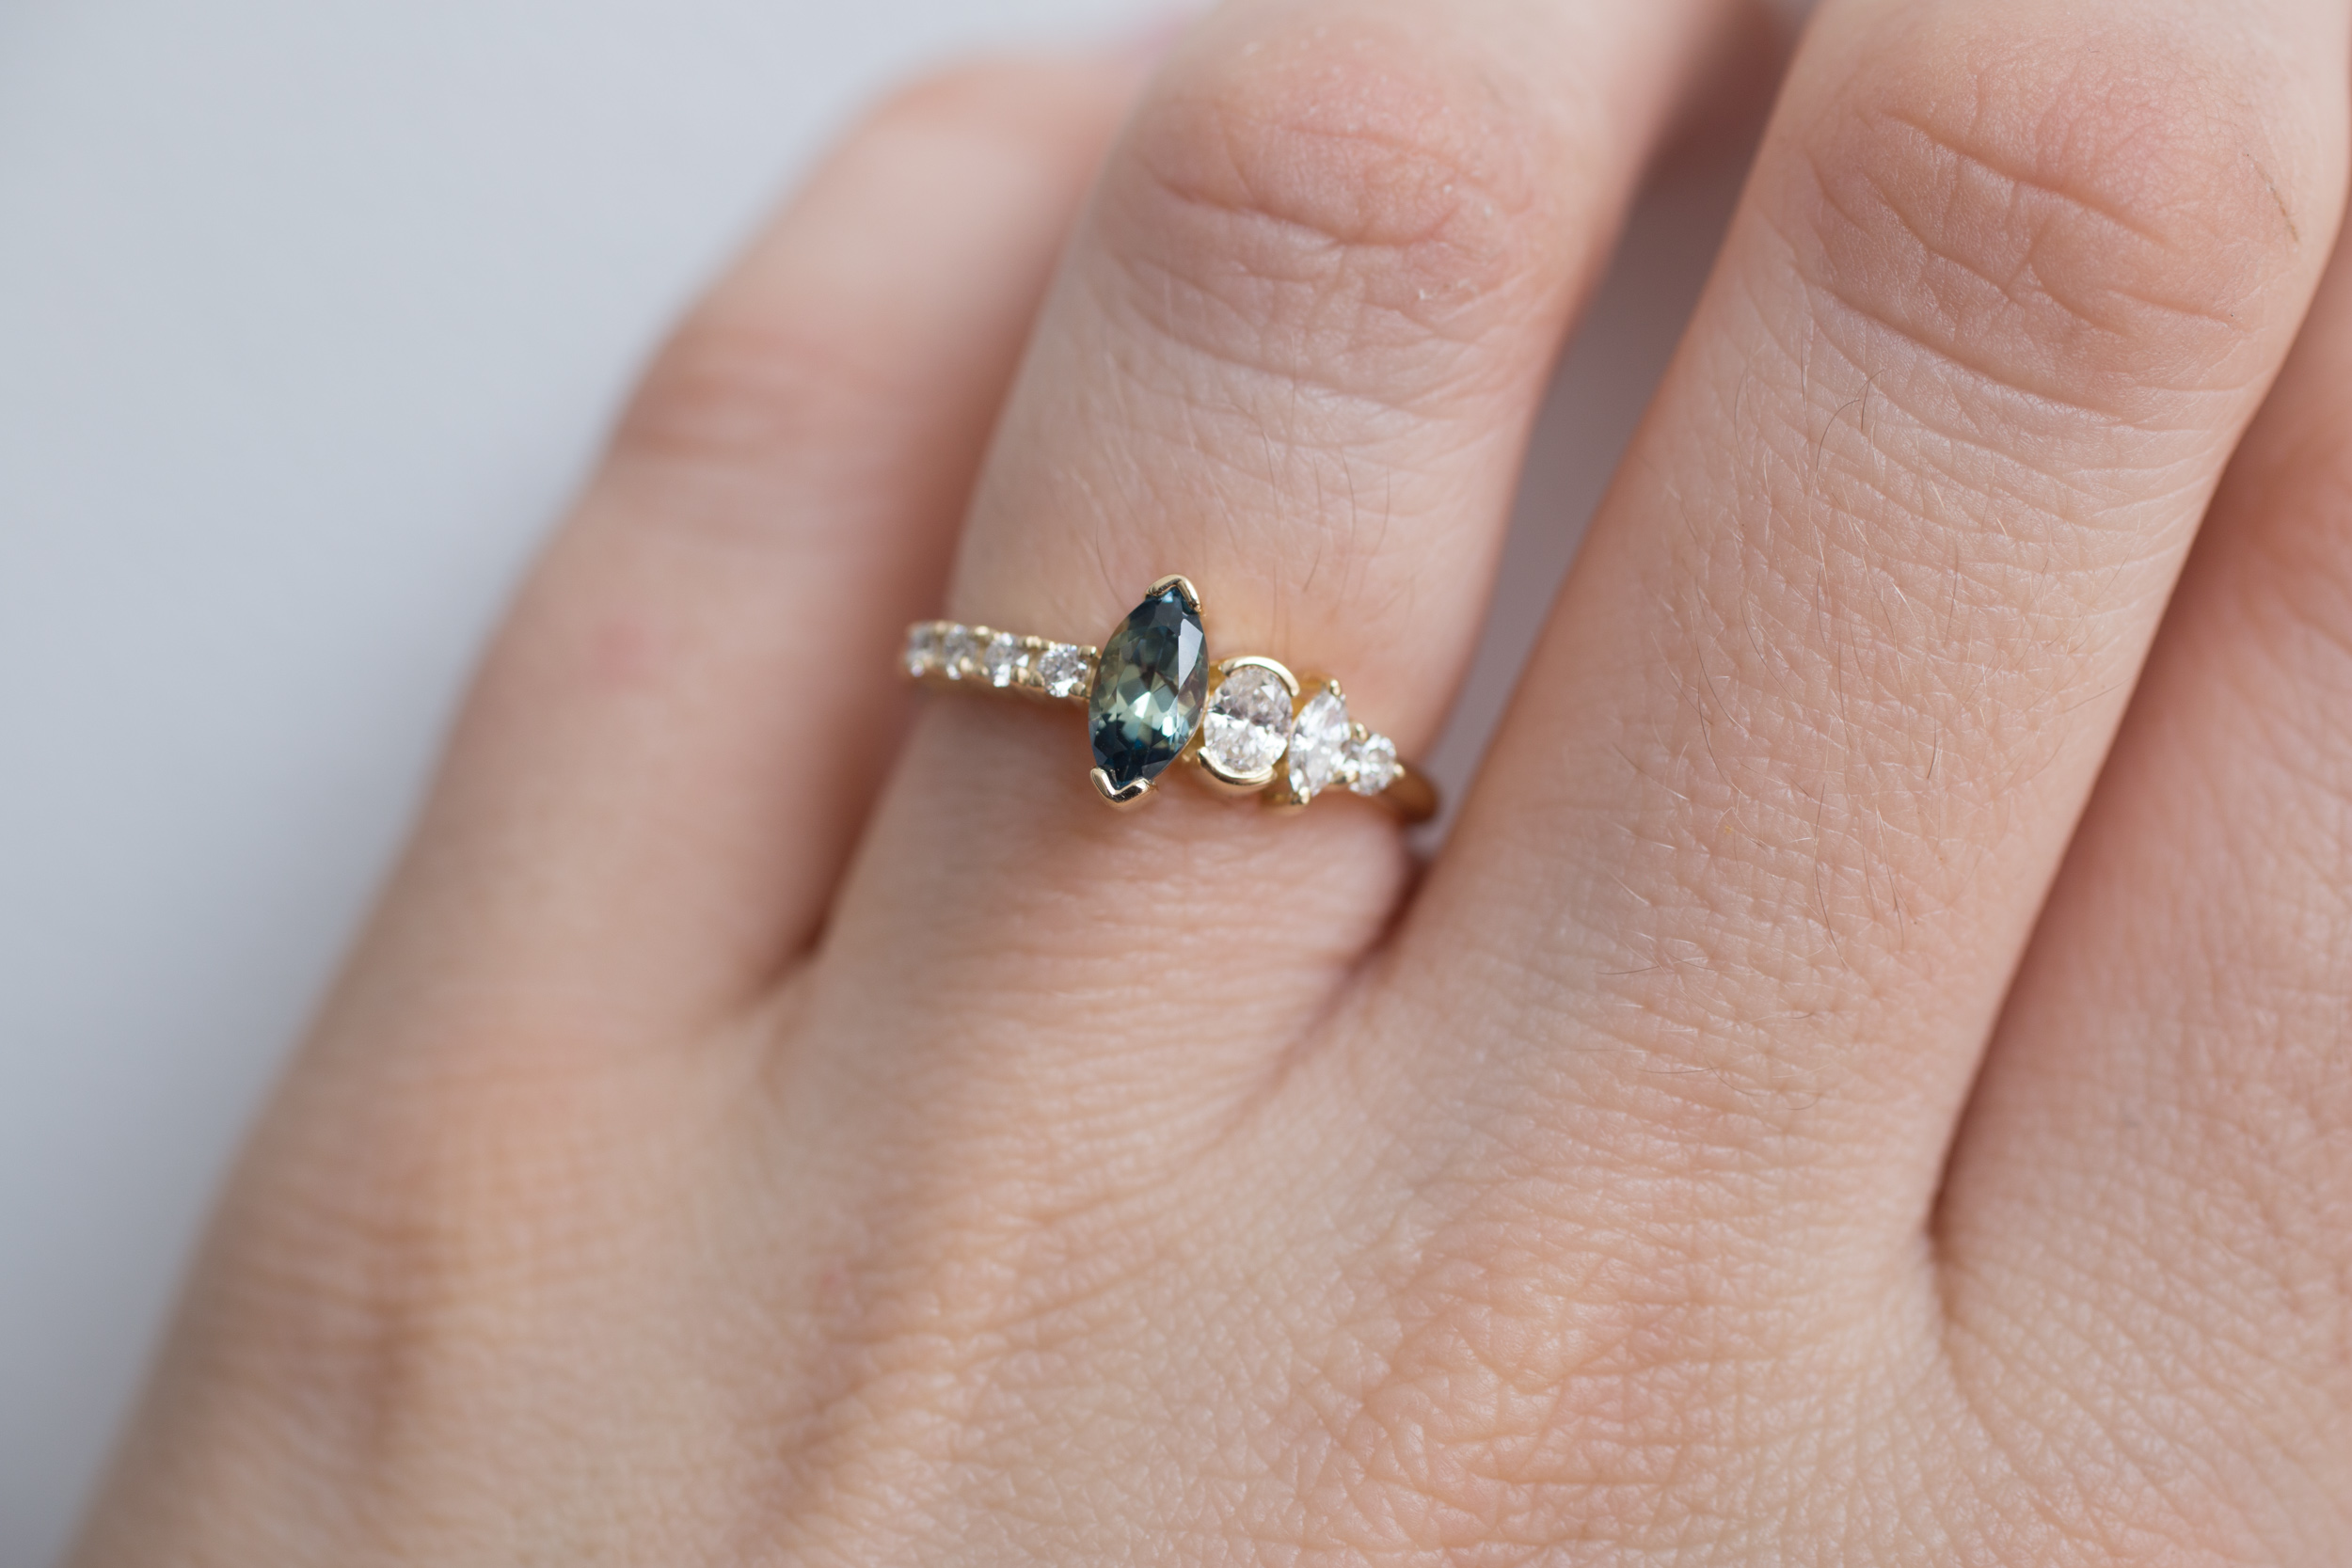 Marquise Bicolor Montana Sapphire + Asymmetrical Diamond Ring | 14k  Recycled Gold | One of a Kind — Mineralogy